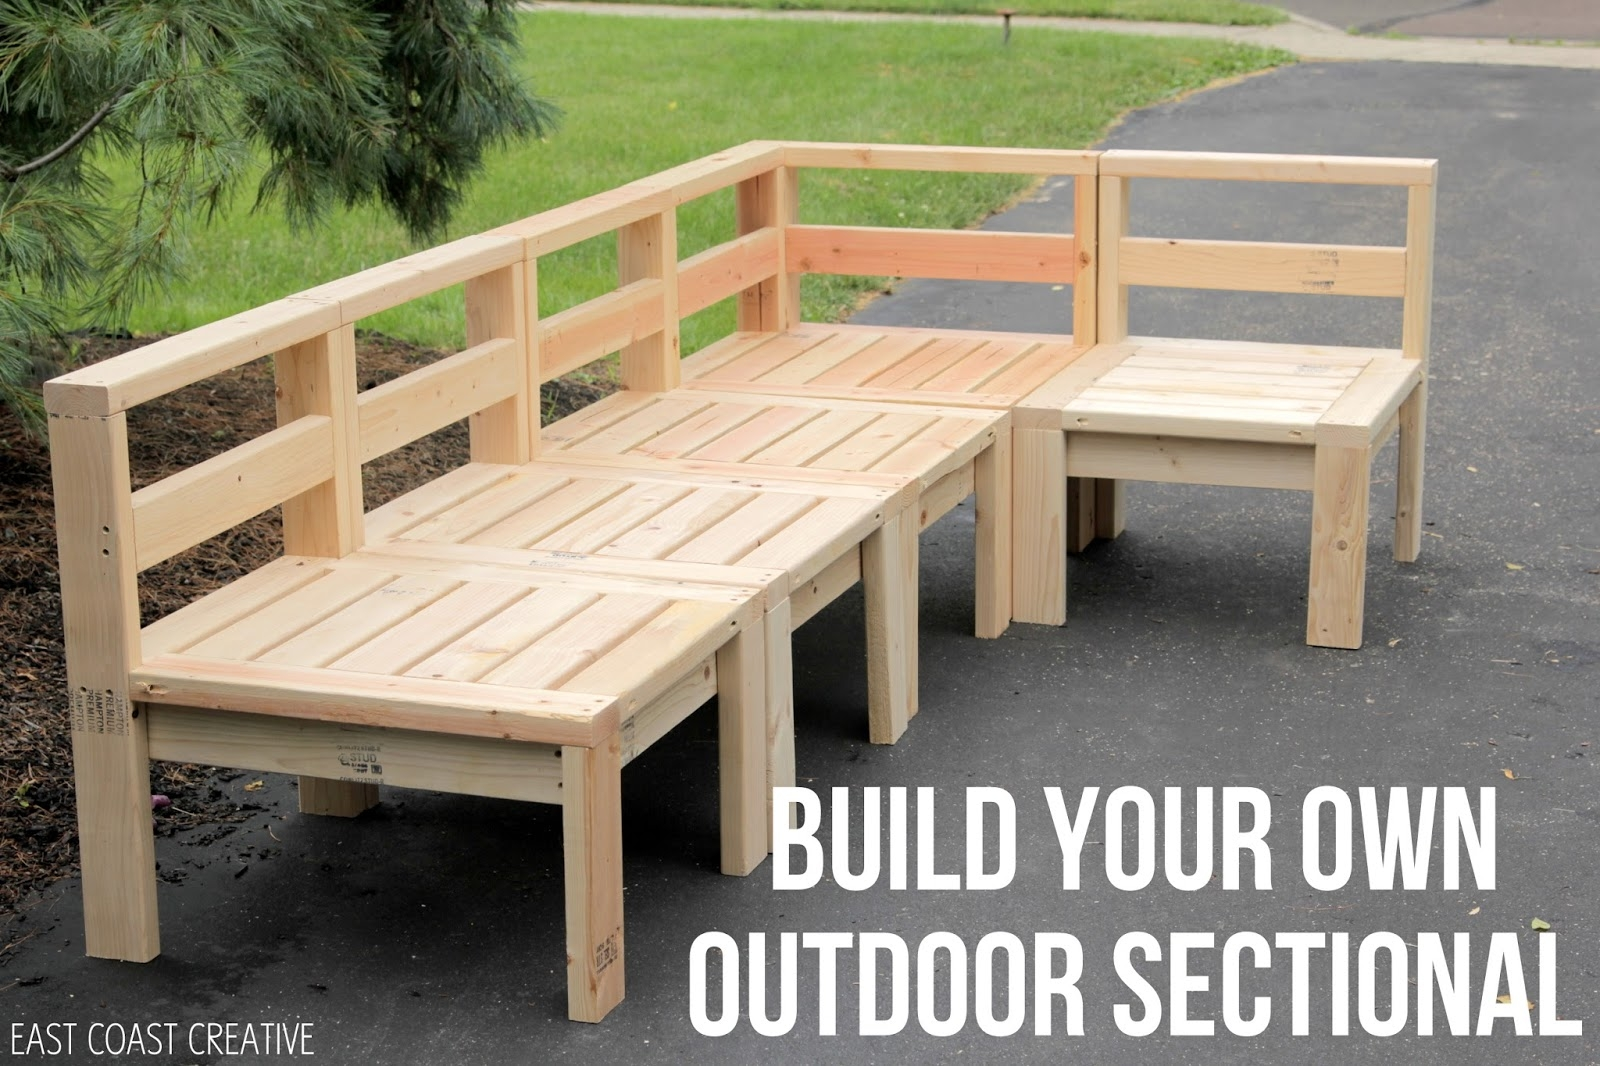 How To Build An Outdoor Sectional Knock It Off East Coast Pertaining To Diy Sectional Sofa Plans (Image 14 of 15)